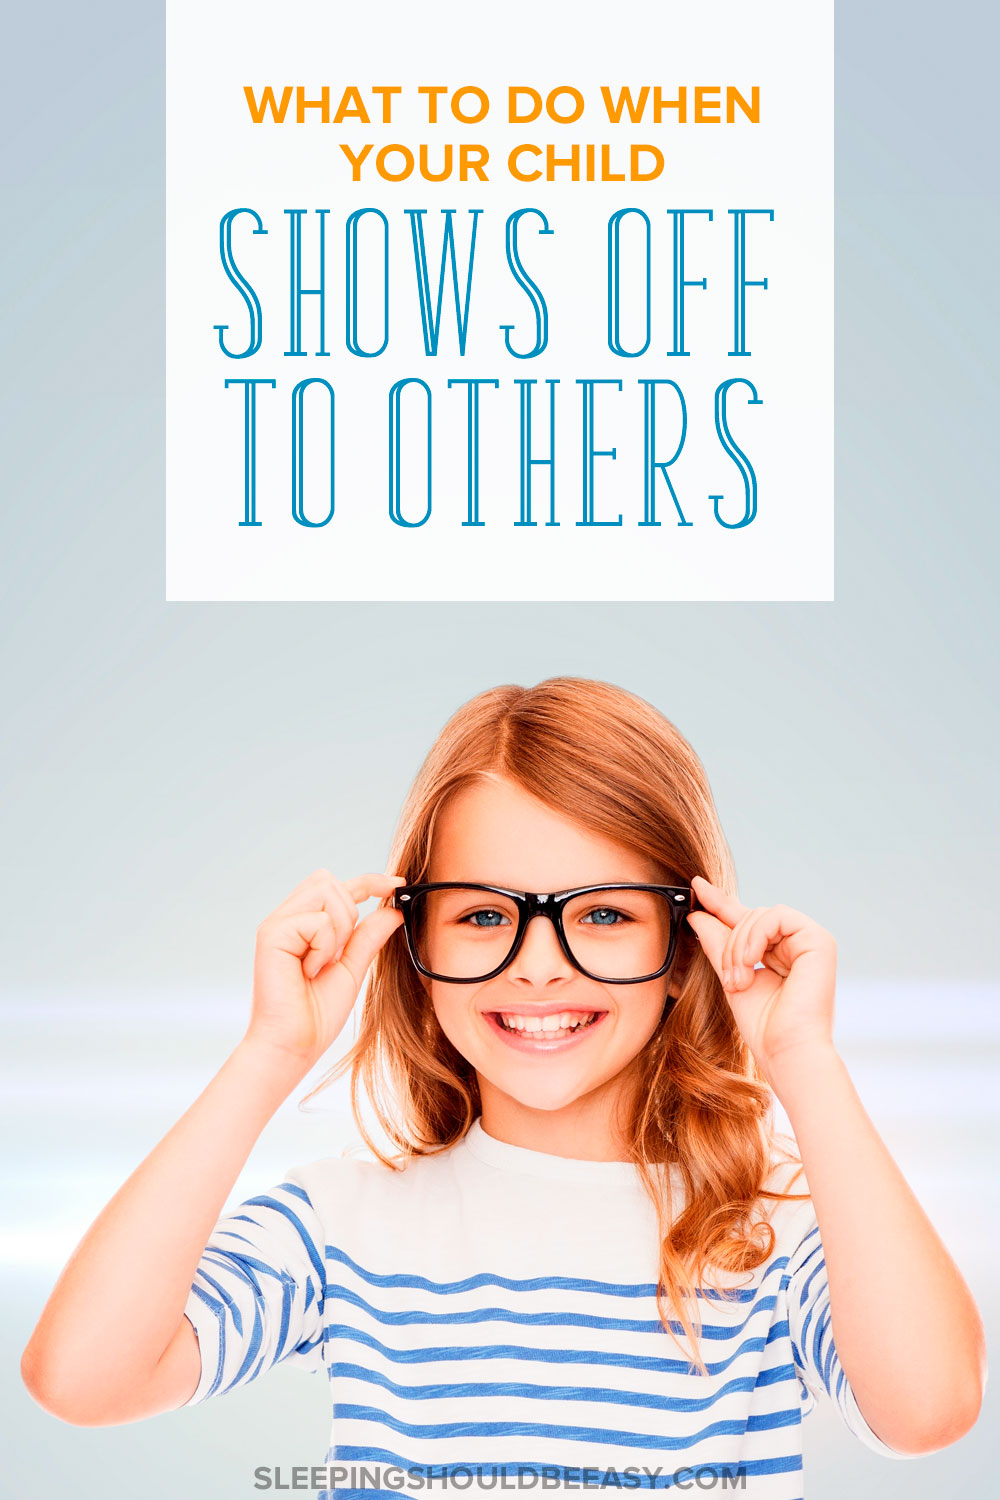 What do you do if your child shows off to others, whether on purpose or not? Here's how to handle social situations when kids end up showing off.